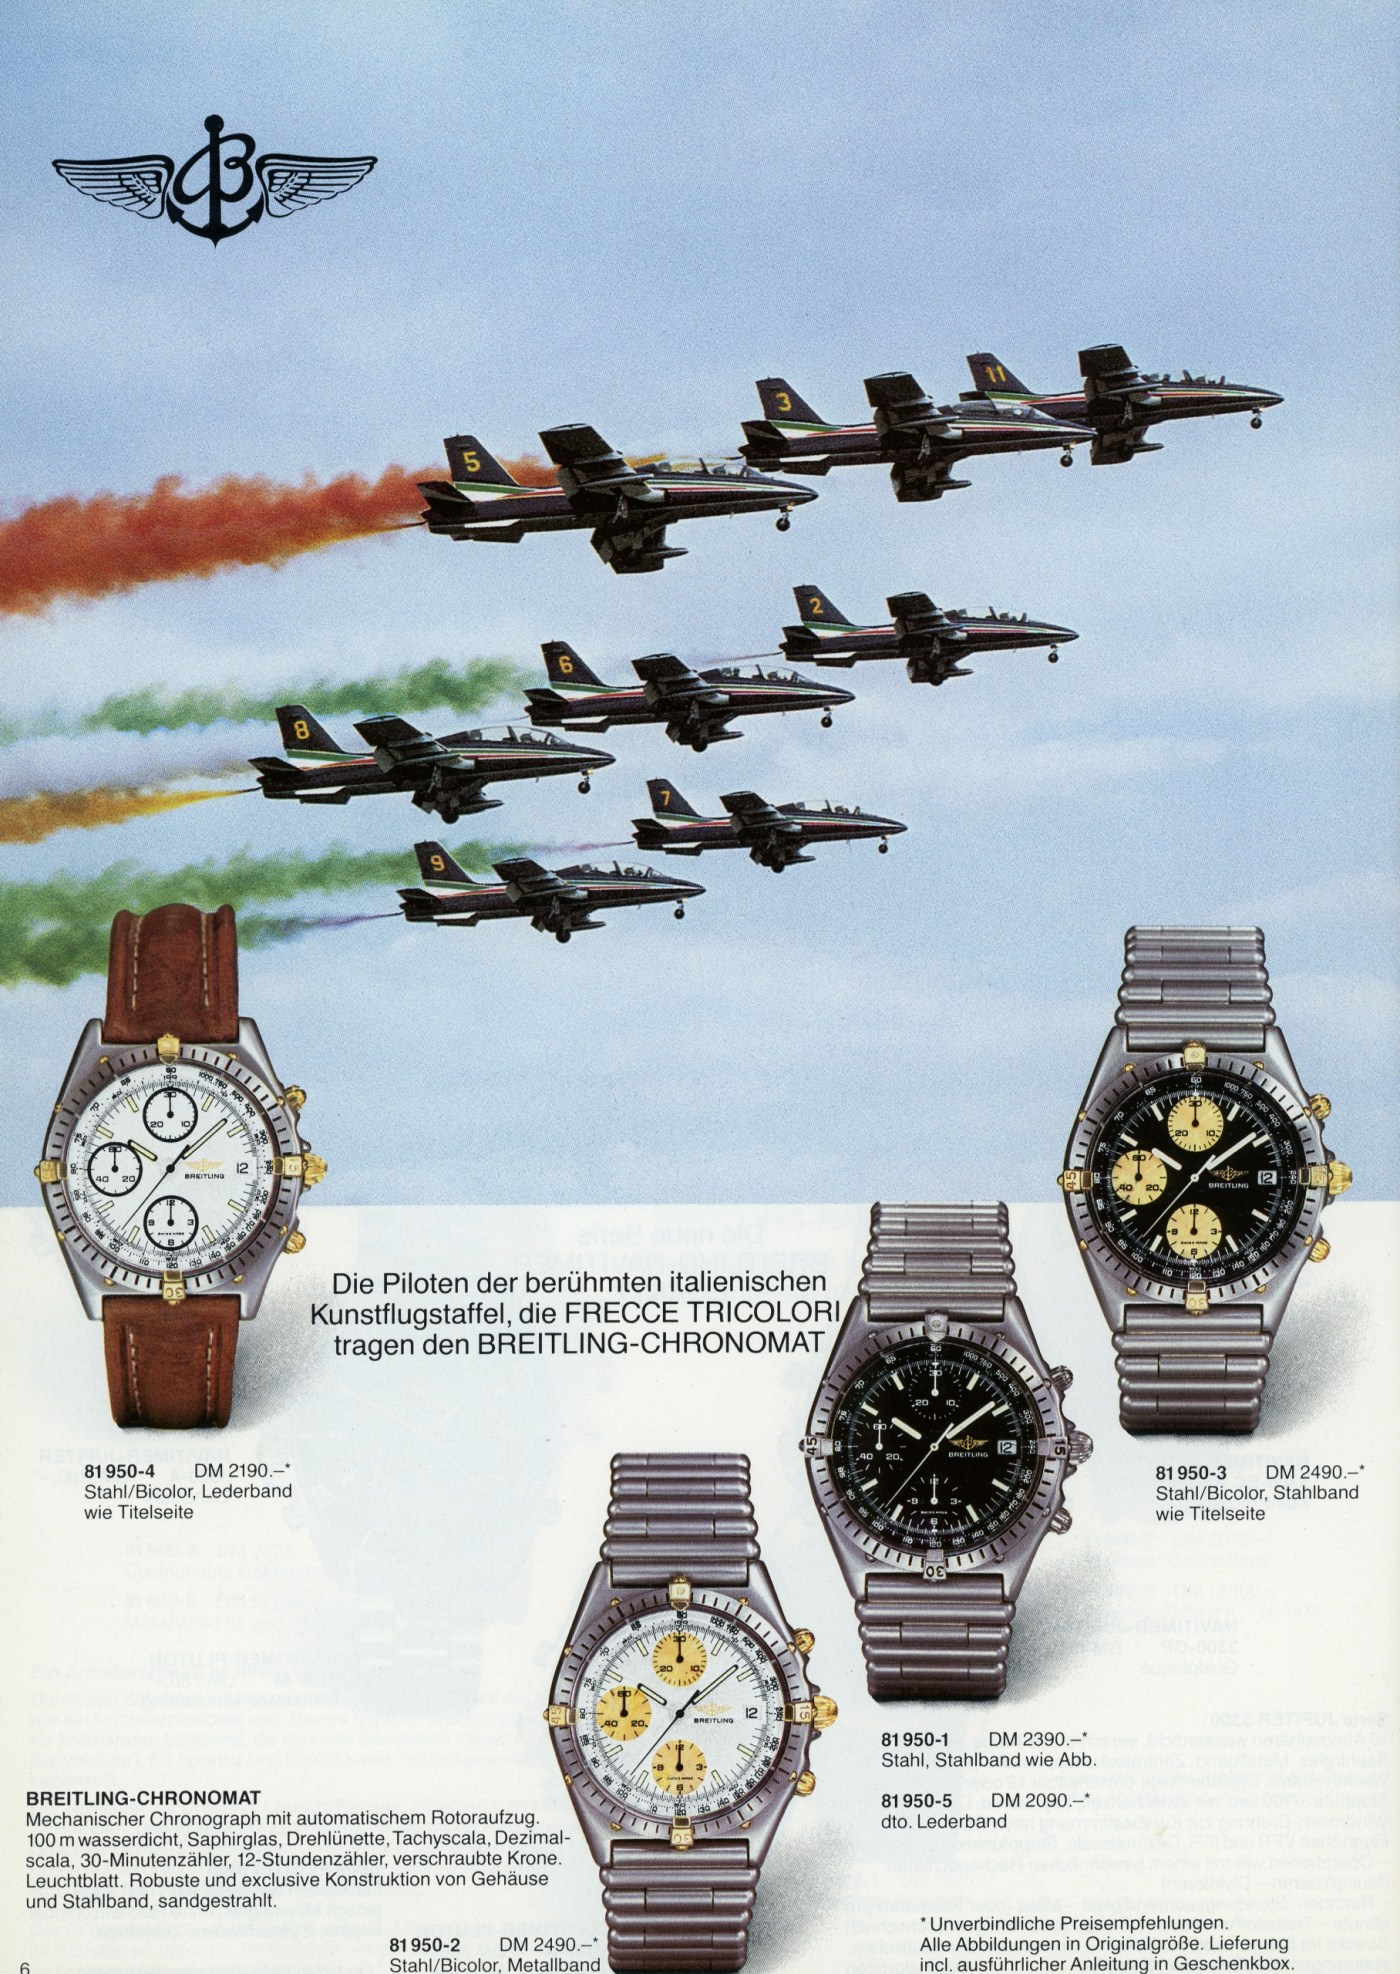 Breitling Catalog from 1987 showing the Chronomat